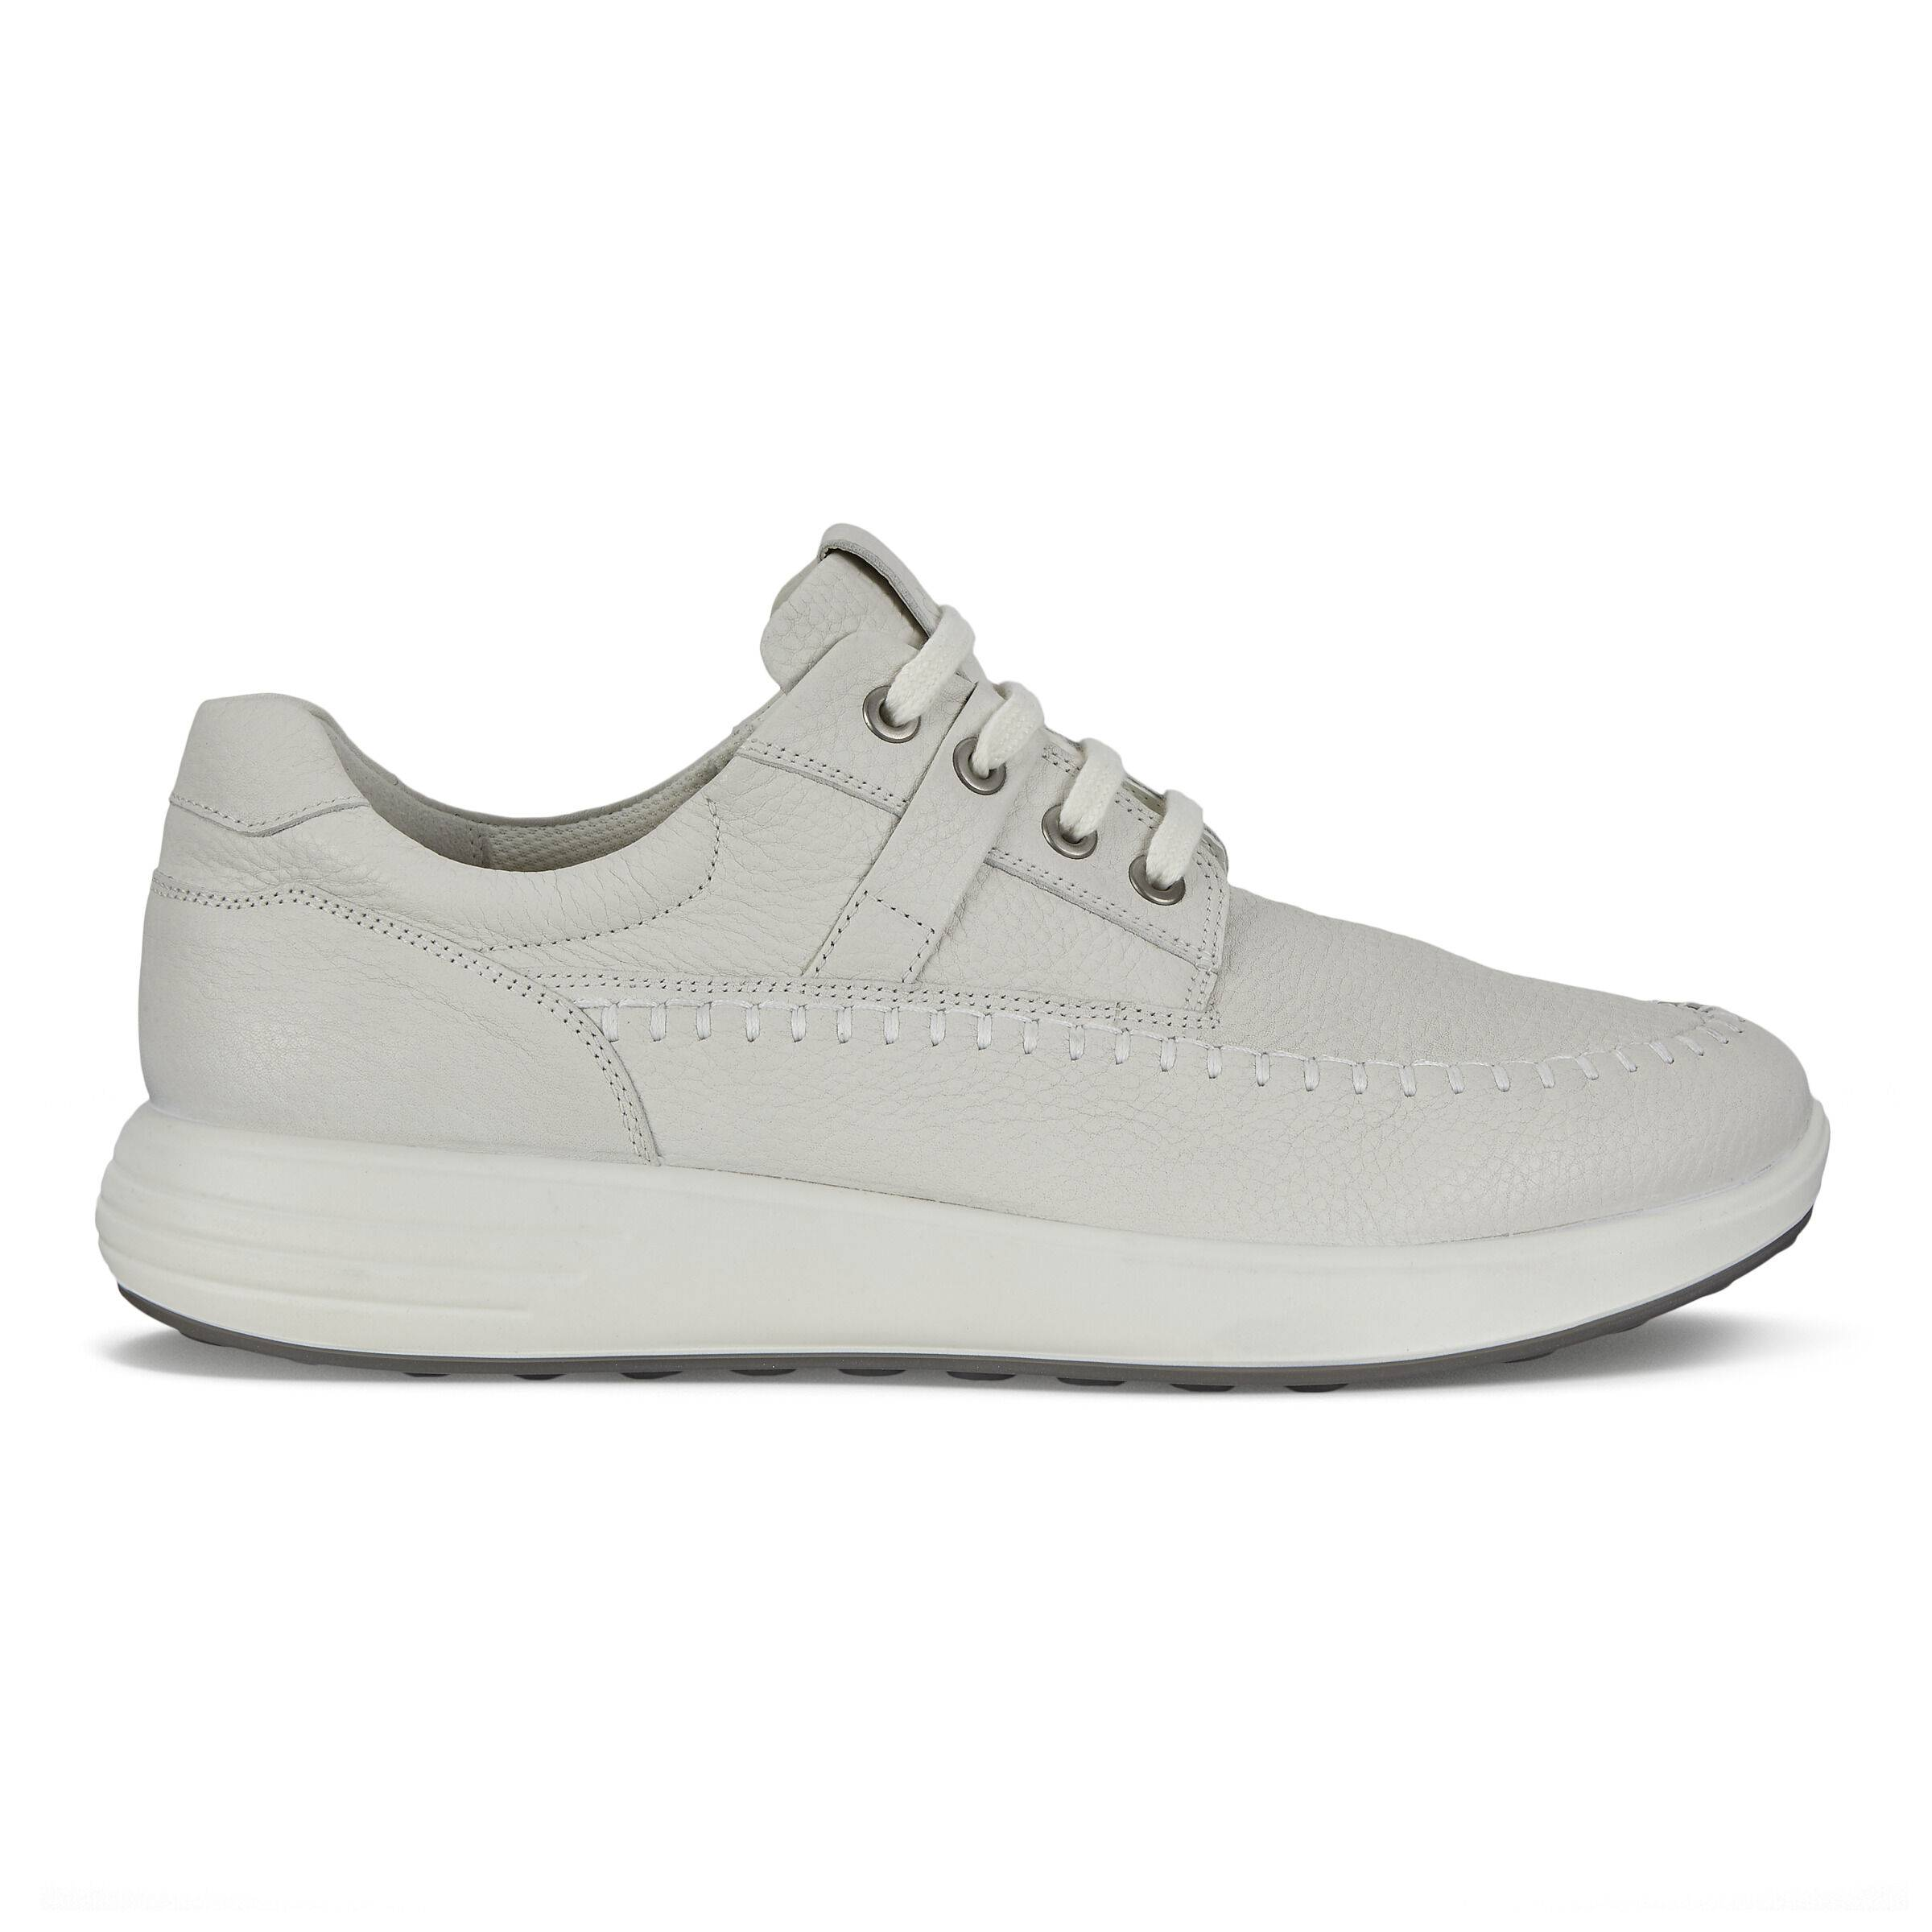 ECCO Soft 7 Runner Mens Shoes Sneakers size  : 12 - White